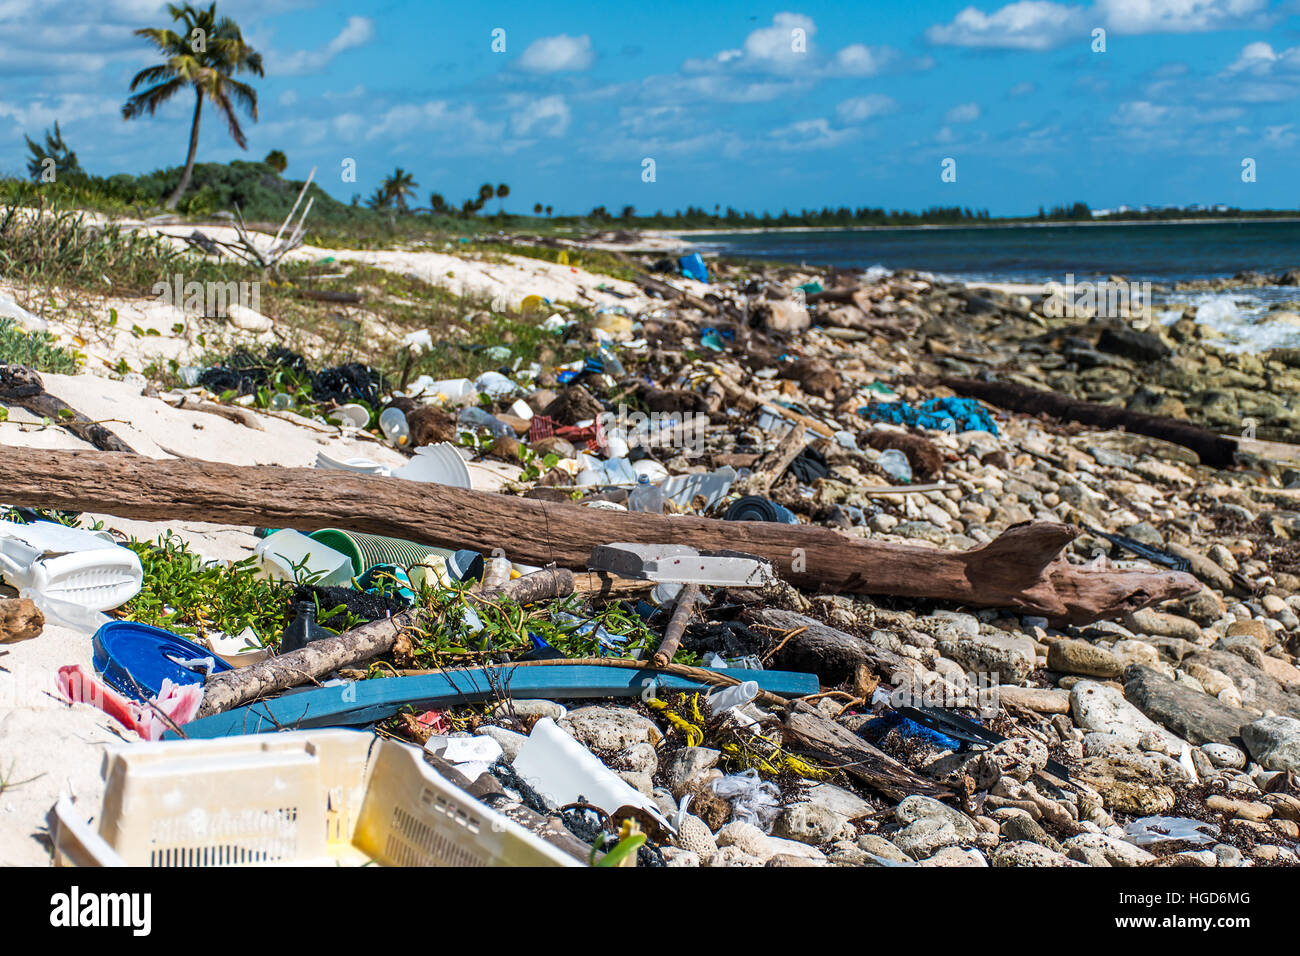 Mexico Coastline ocean Pollution Problem with plastic litter 4 - Stock Image